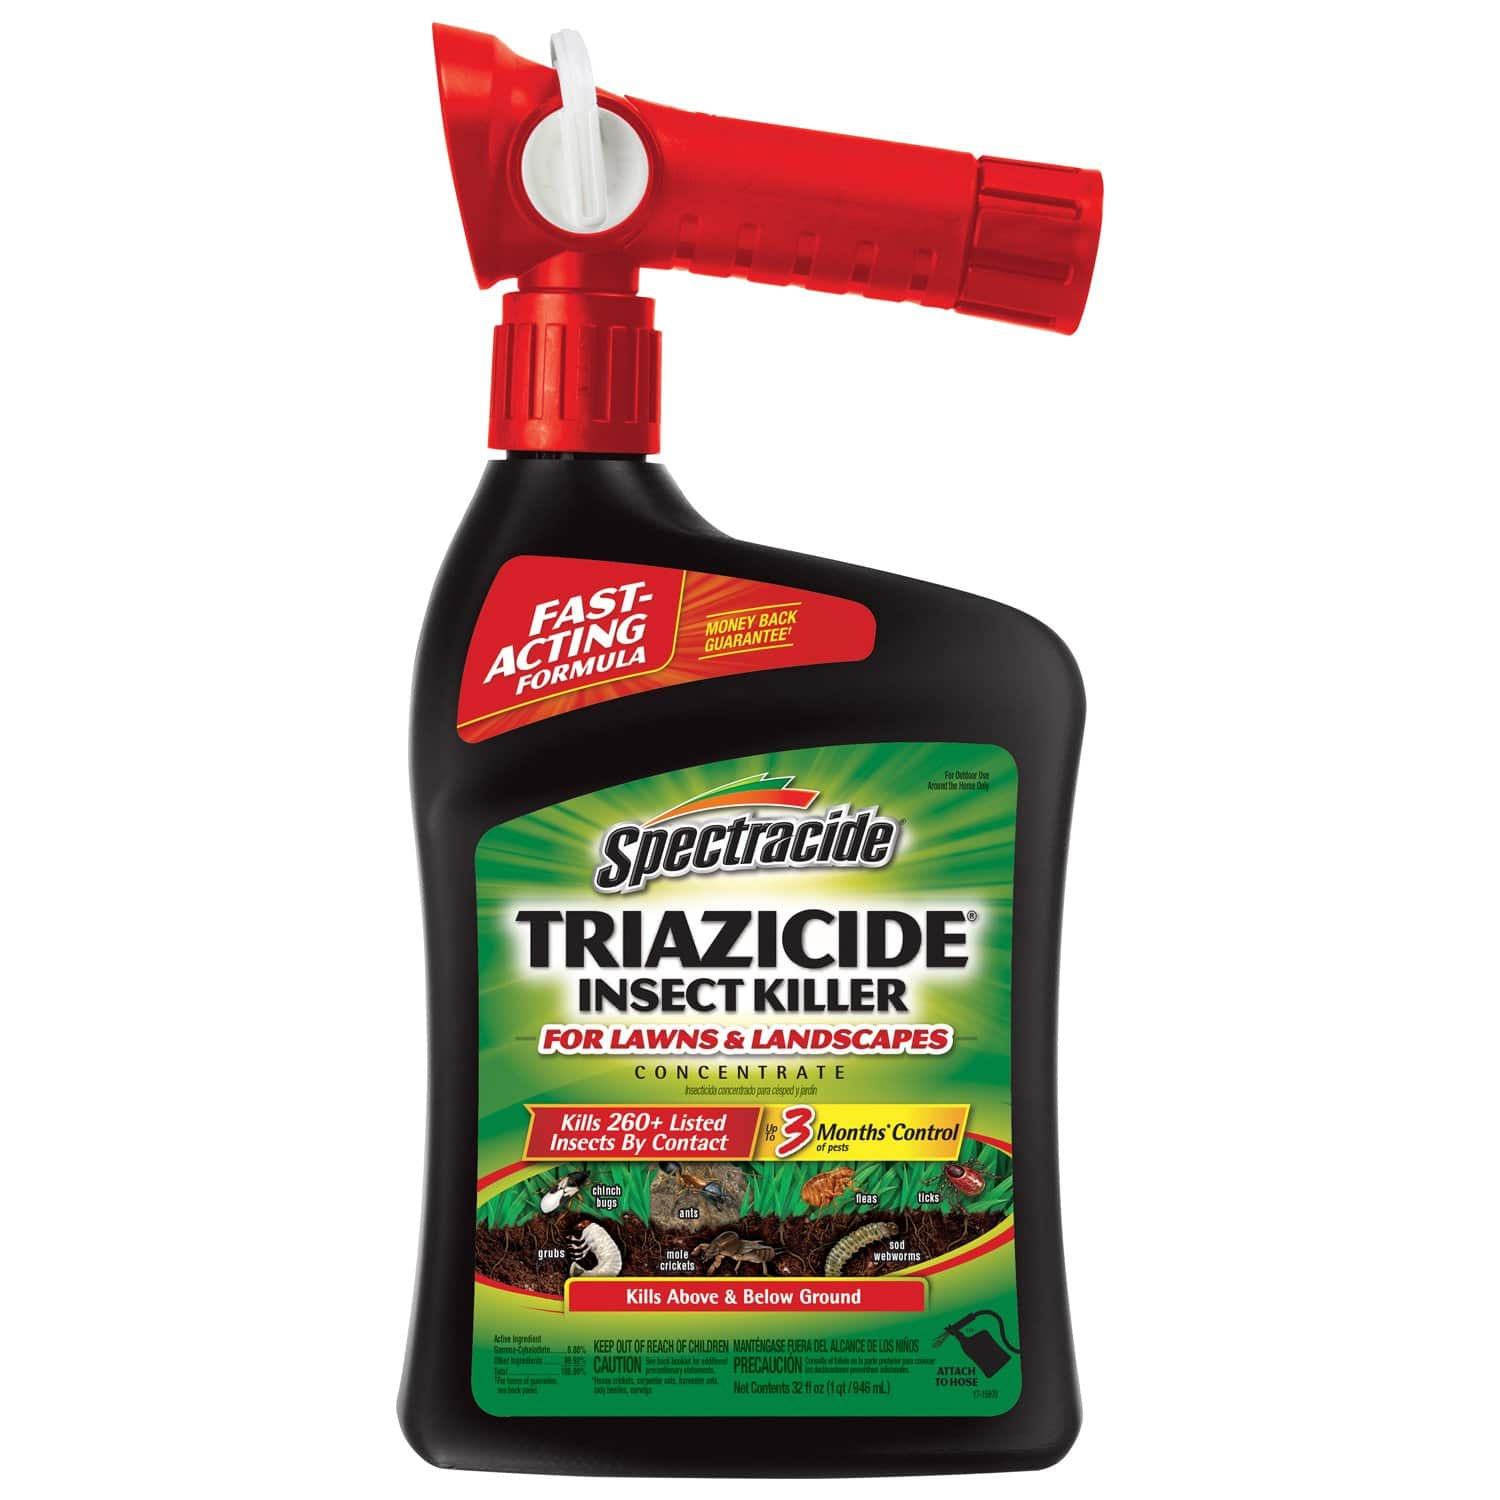 Spectracide Triazicide Insect Killer For Lawns & Landscapes Concentrate, Ready-to-Spray, 32-Ounce [Pack of 1] $4